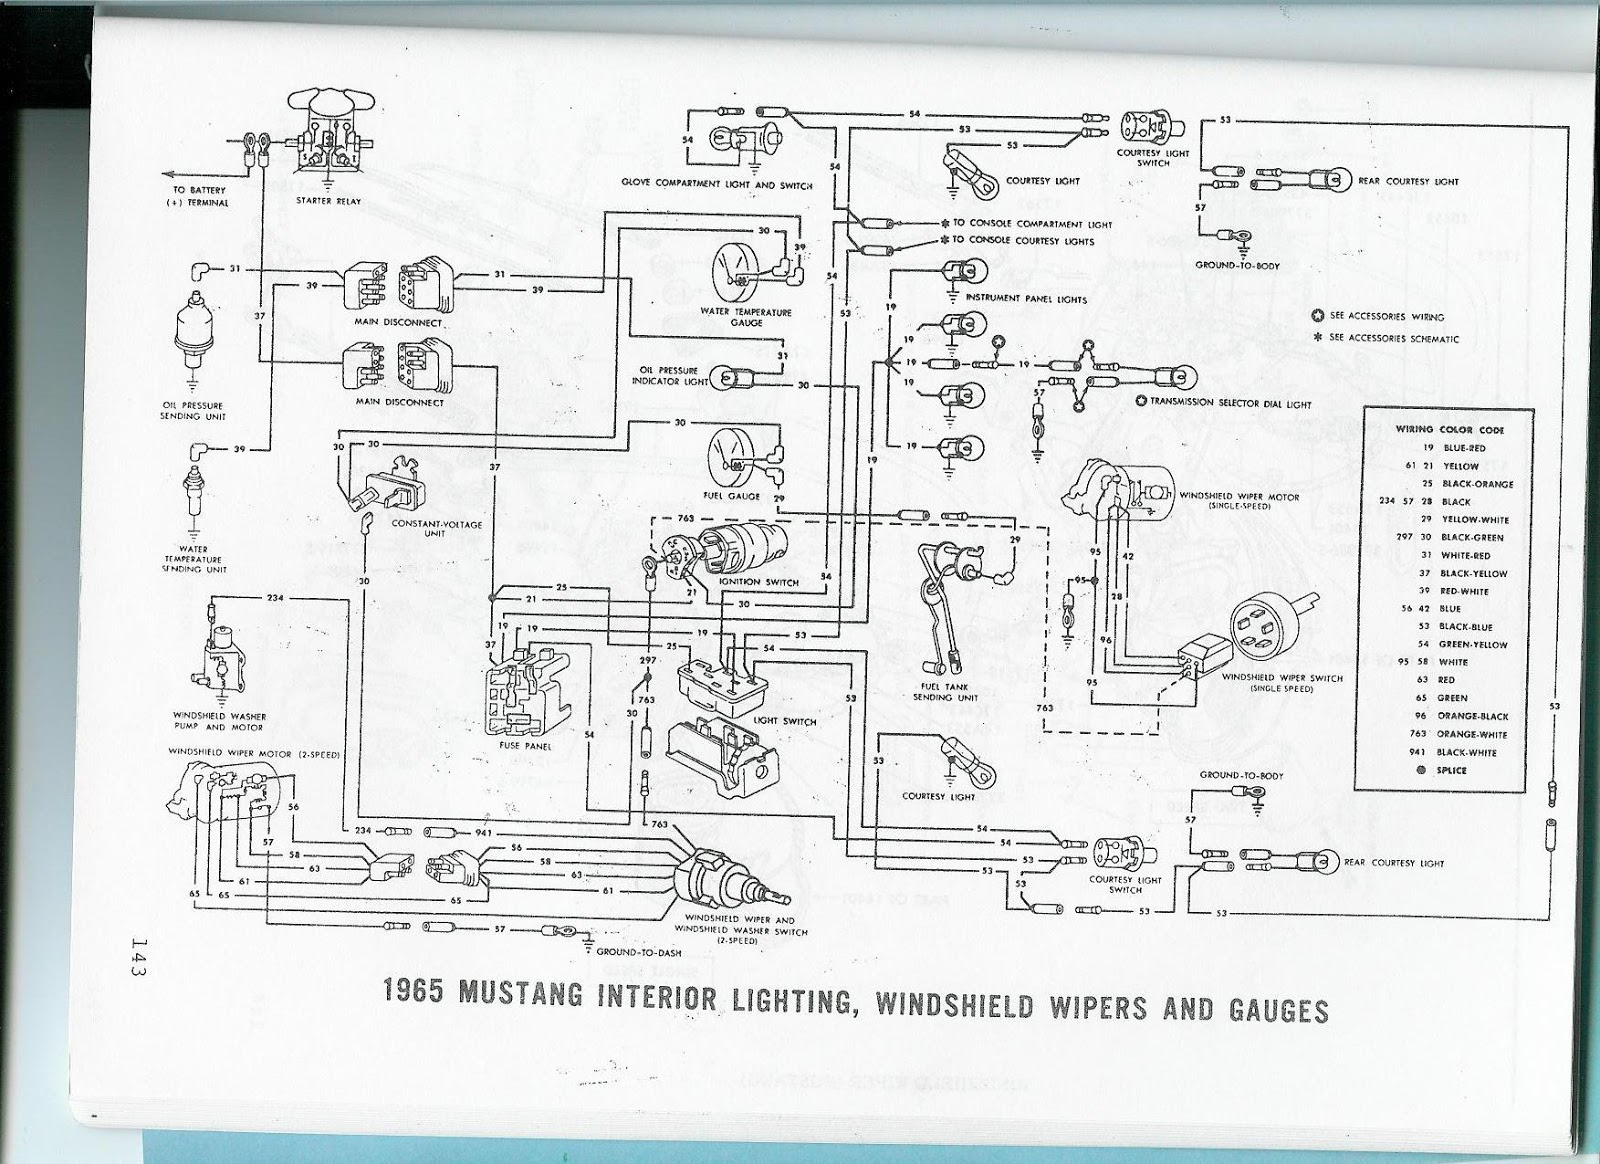 65+interior+lighting+and+gauges 66 mustang wiring diagram 1966 mustang dash wiring diagram 1965 mustang wiring diagram free at honlapkeszites.co